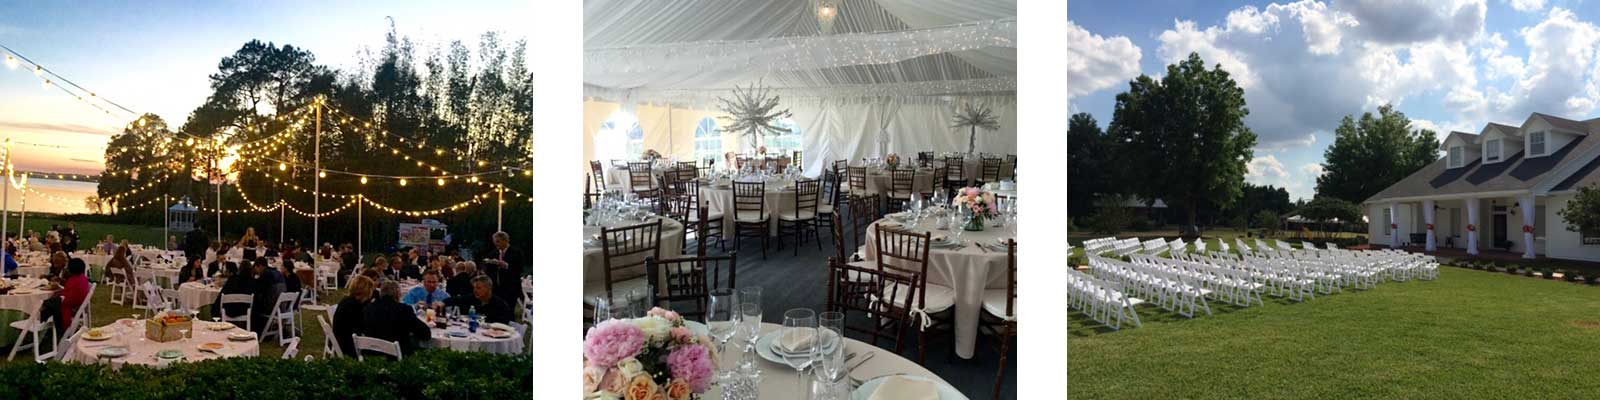 chair cover rentals quad cities chiavari chairs wedding ceremony party in winter haven fl event rental store polk county